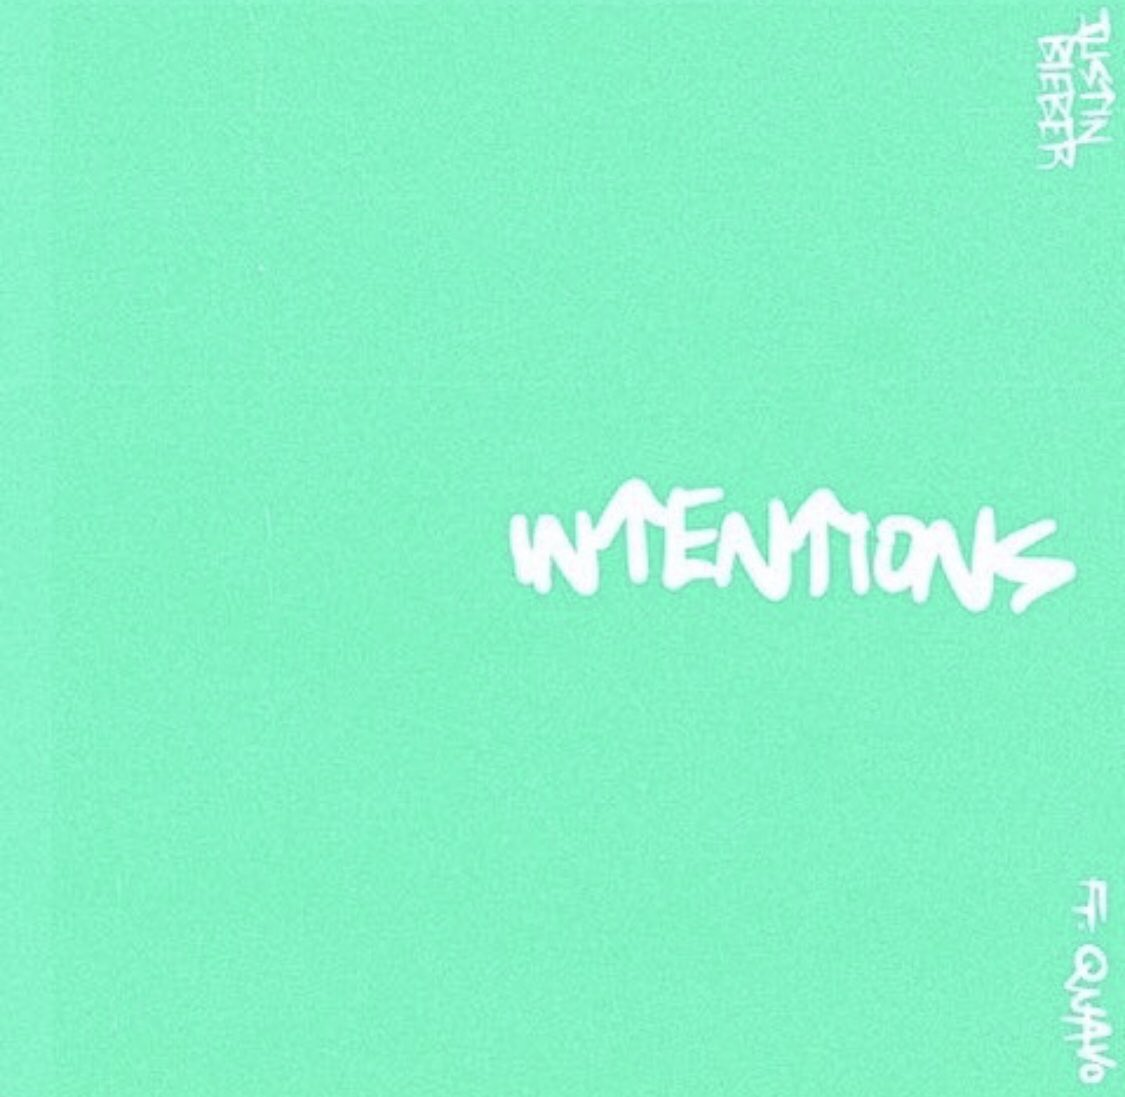 Intentions featuring Quavo is coming on Friday!! including the music video ✨